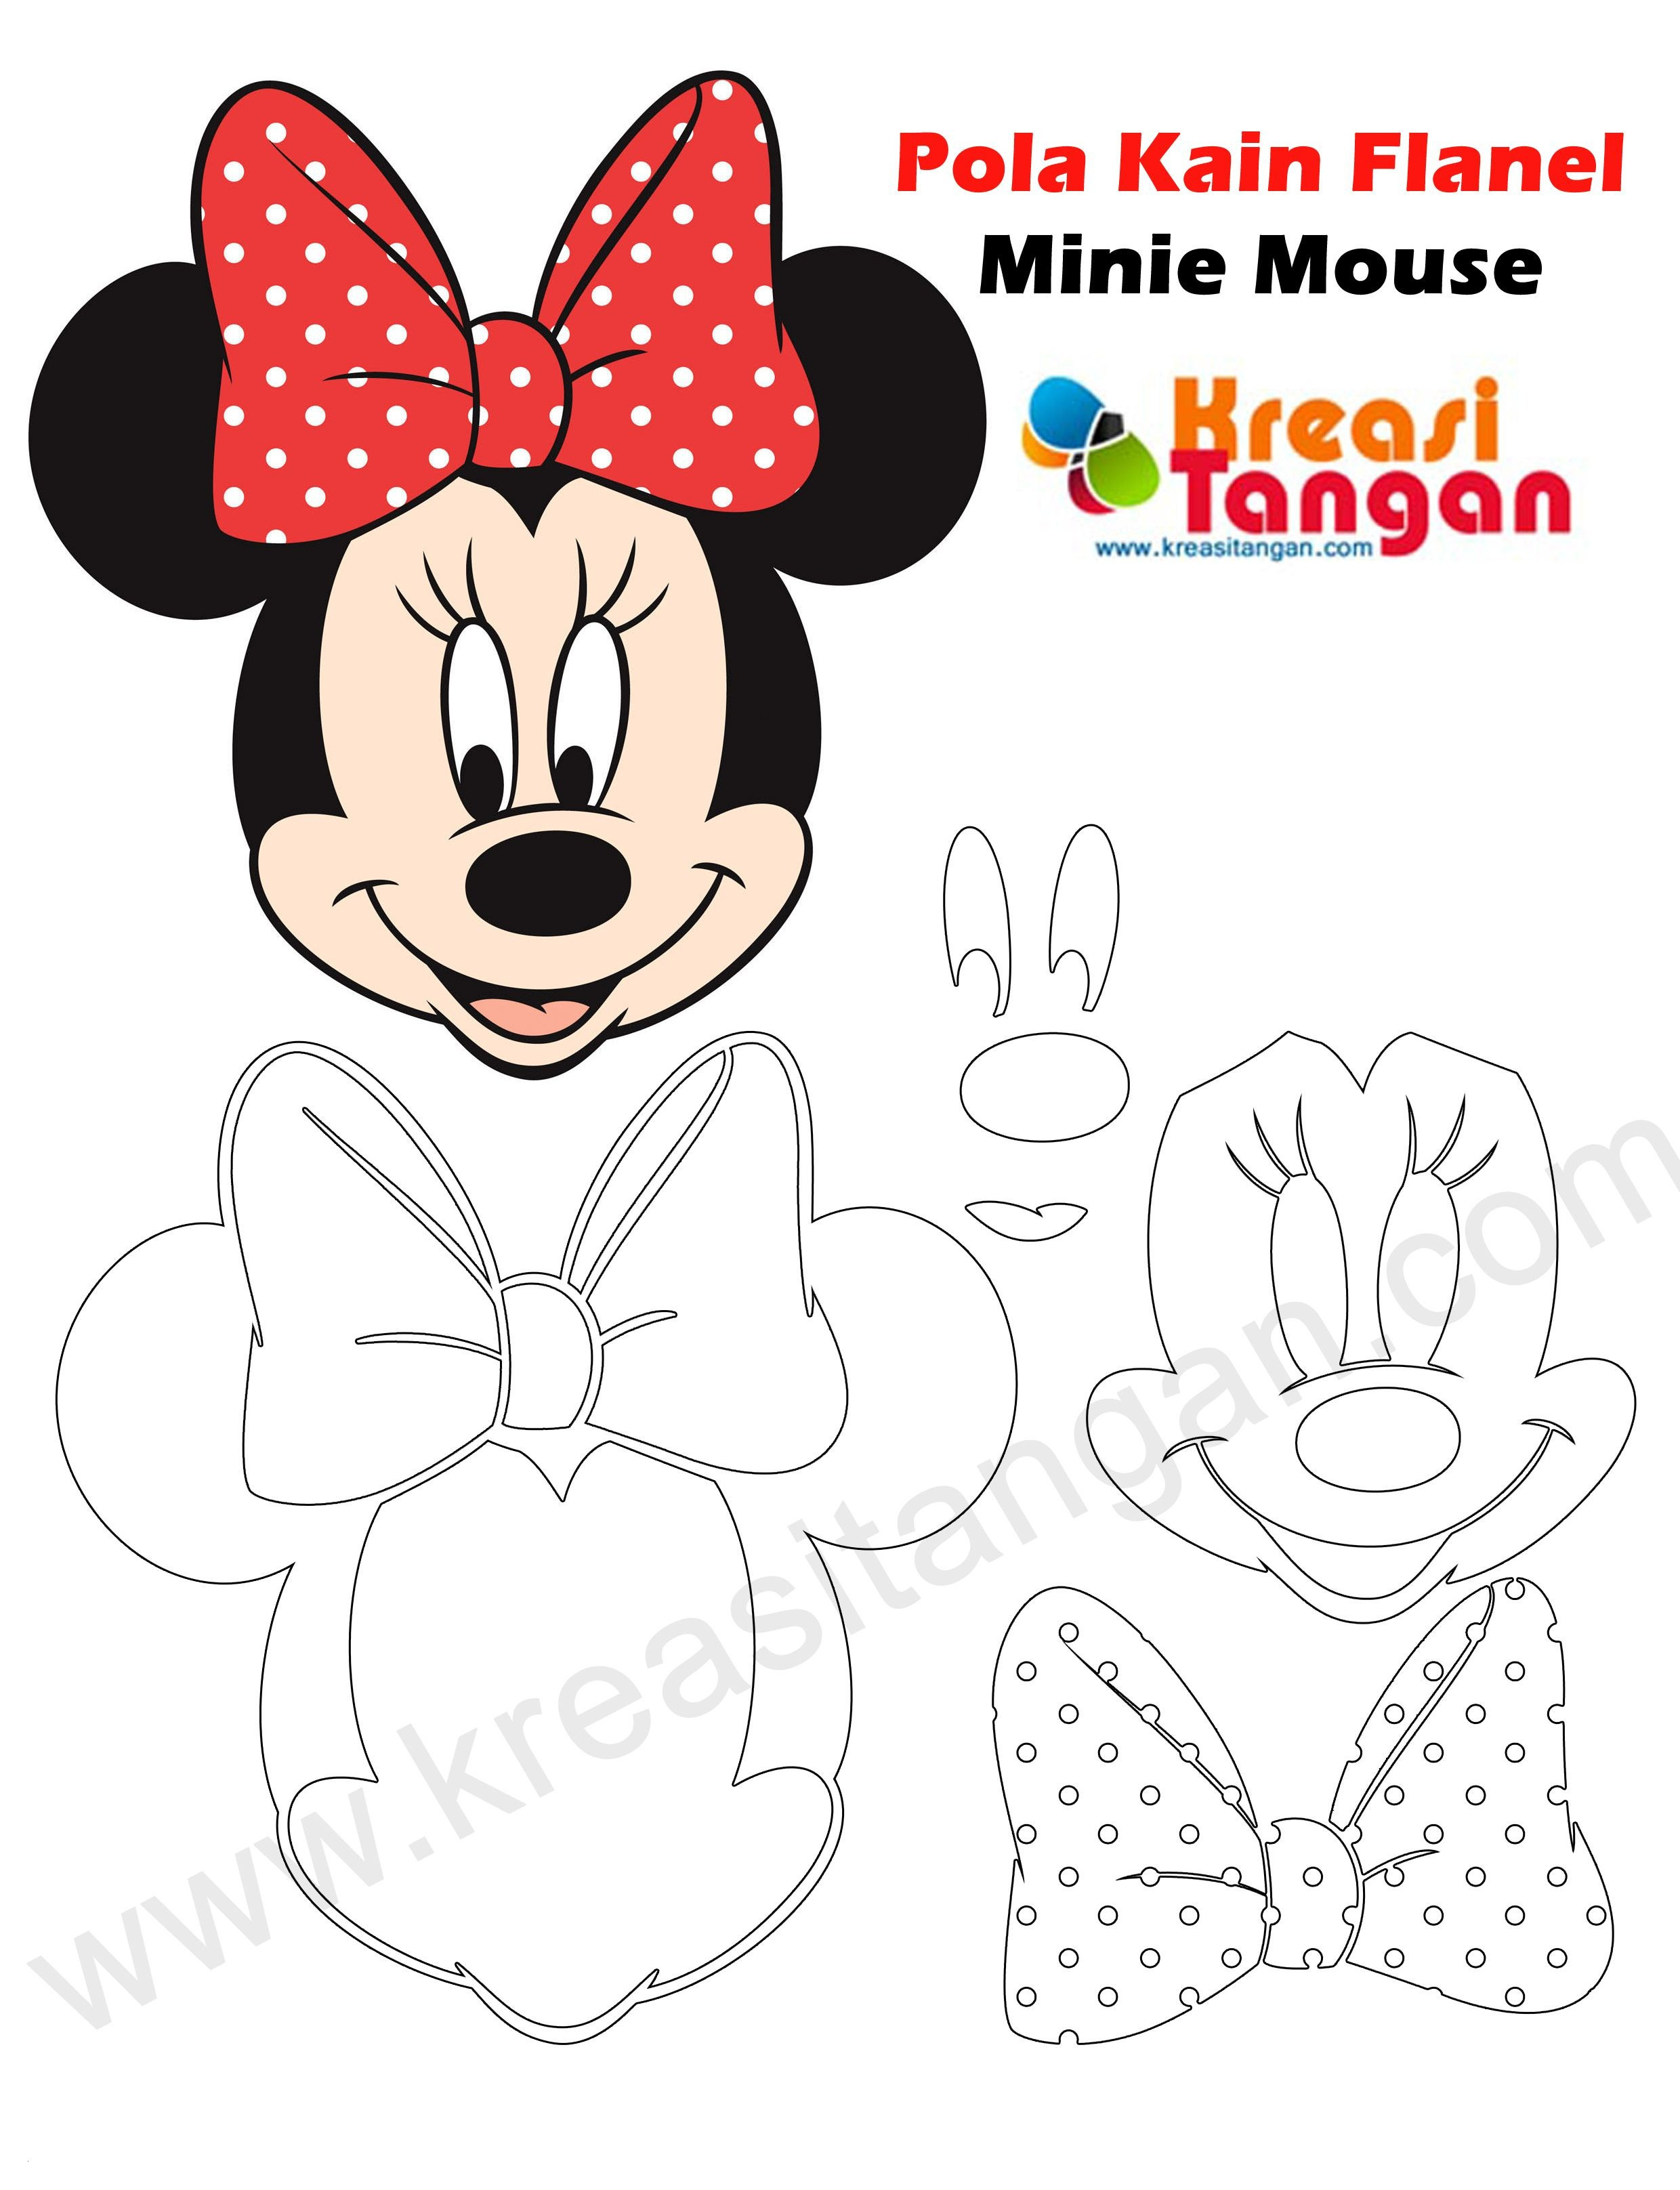 Minnie Mouse Malvorlage Das Beste Von Minnie Mouse Coloring Book Cool Image Print Coloring Image Print Bild